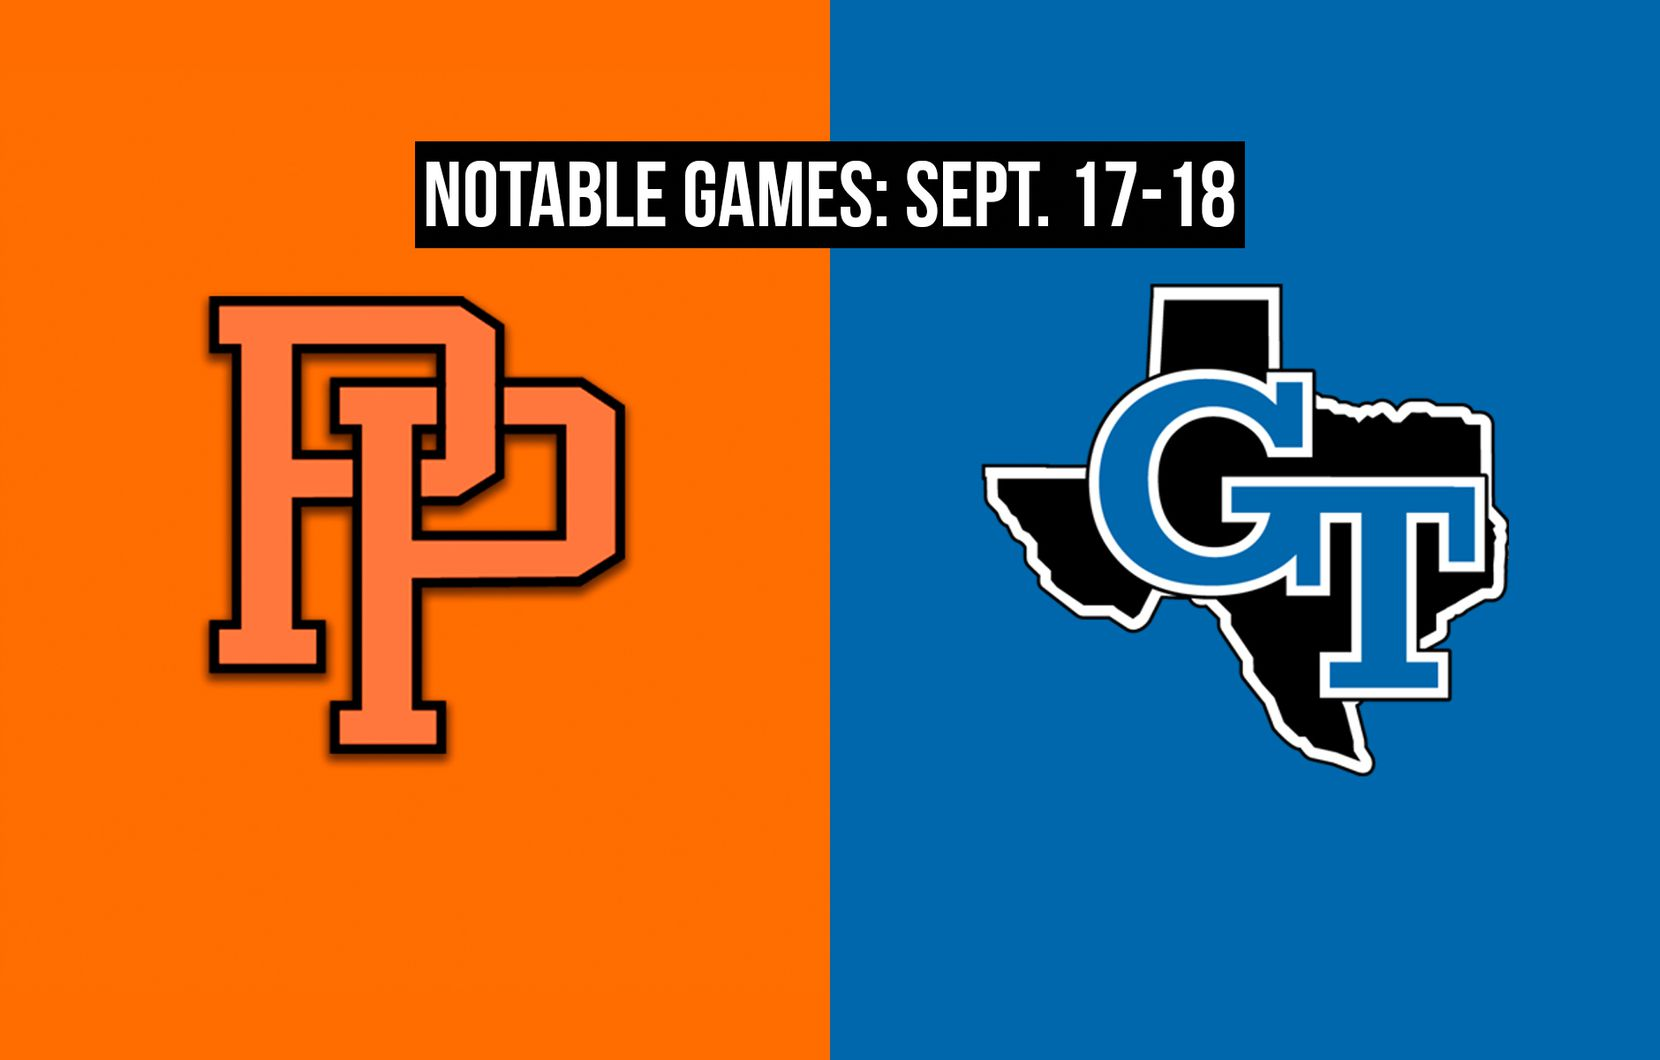 Notable games for the week of Sept. 17-18 of the 2020 season: Pilot Point vs. Gunter.